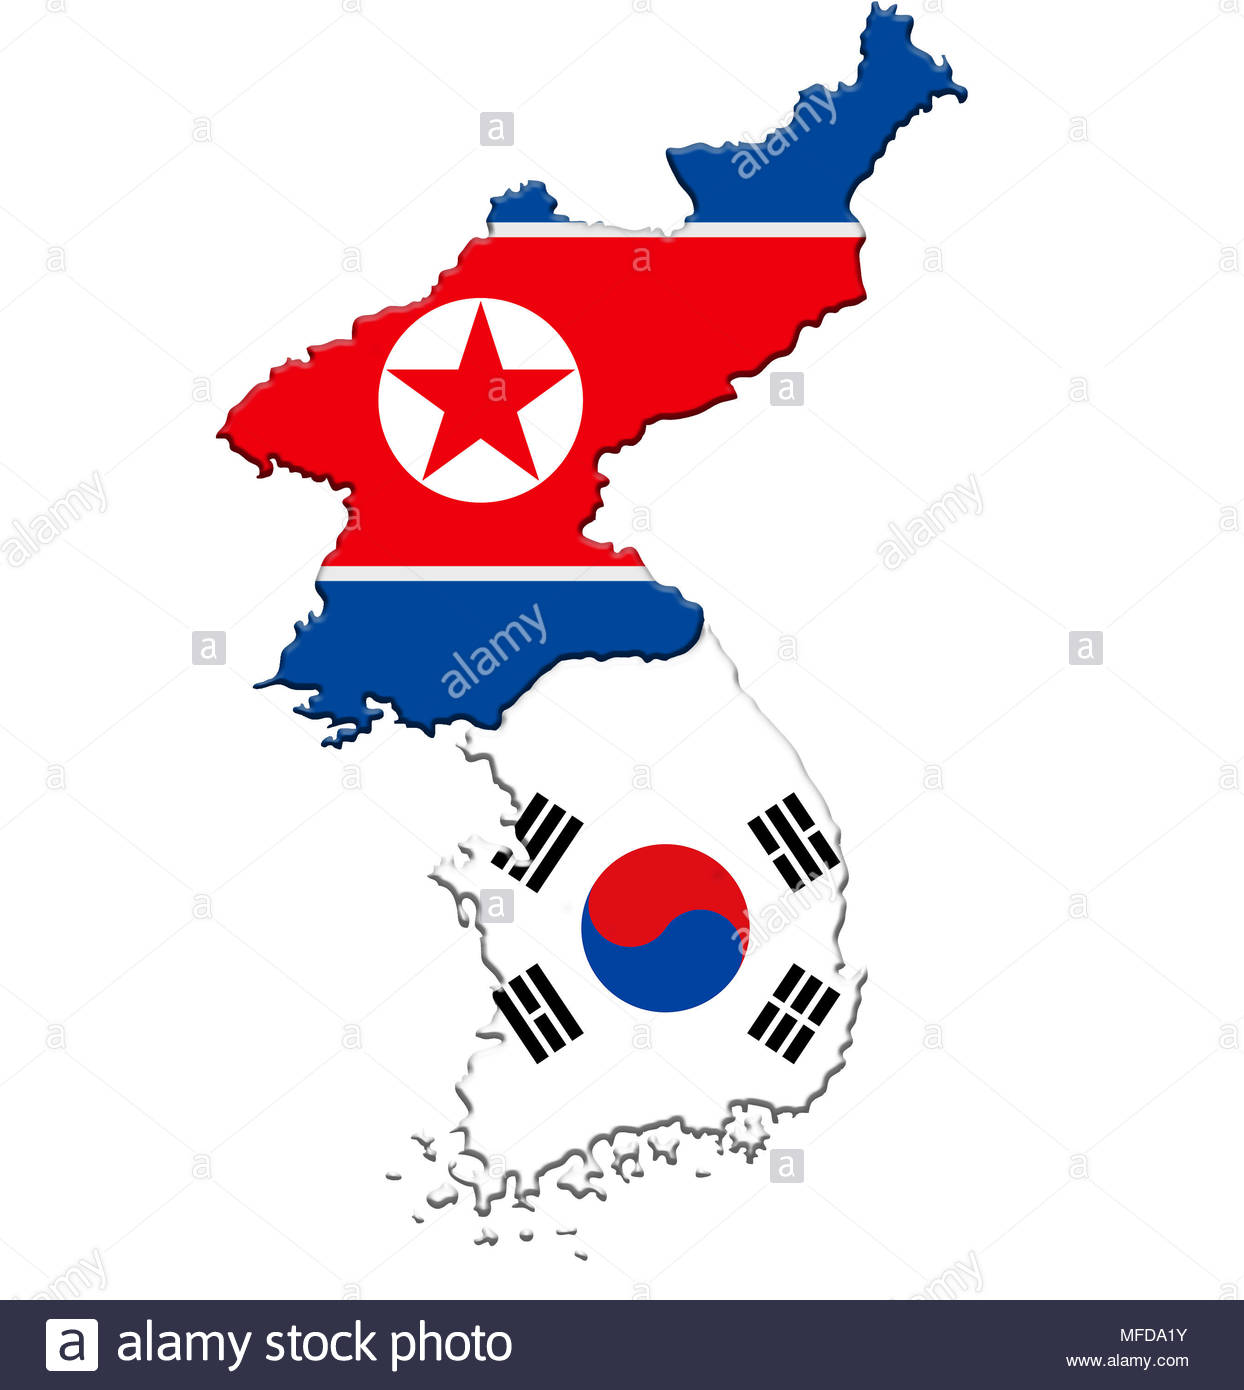 South Korea Map Cut Out Stock Images & Pictures - Alamy